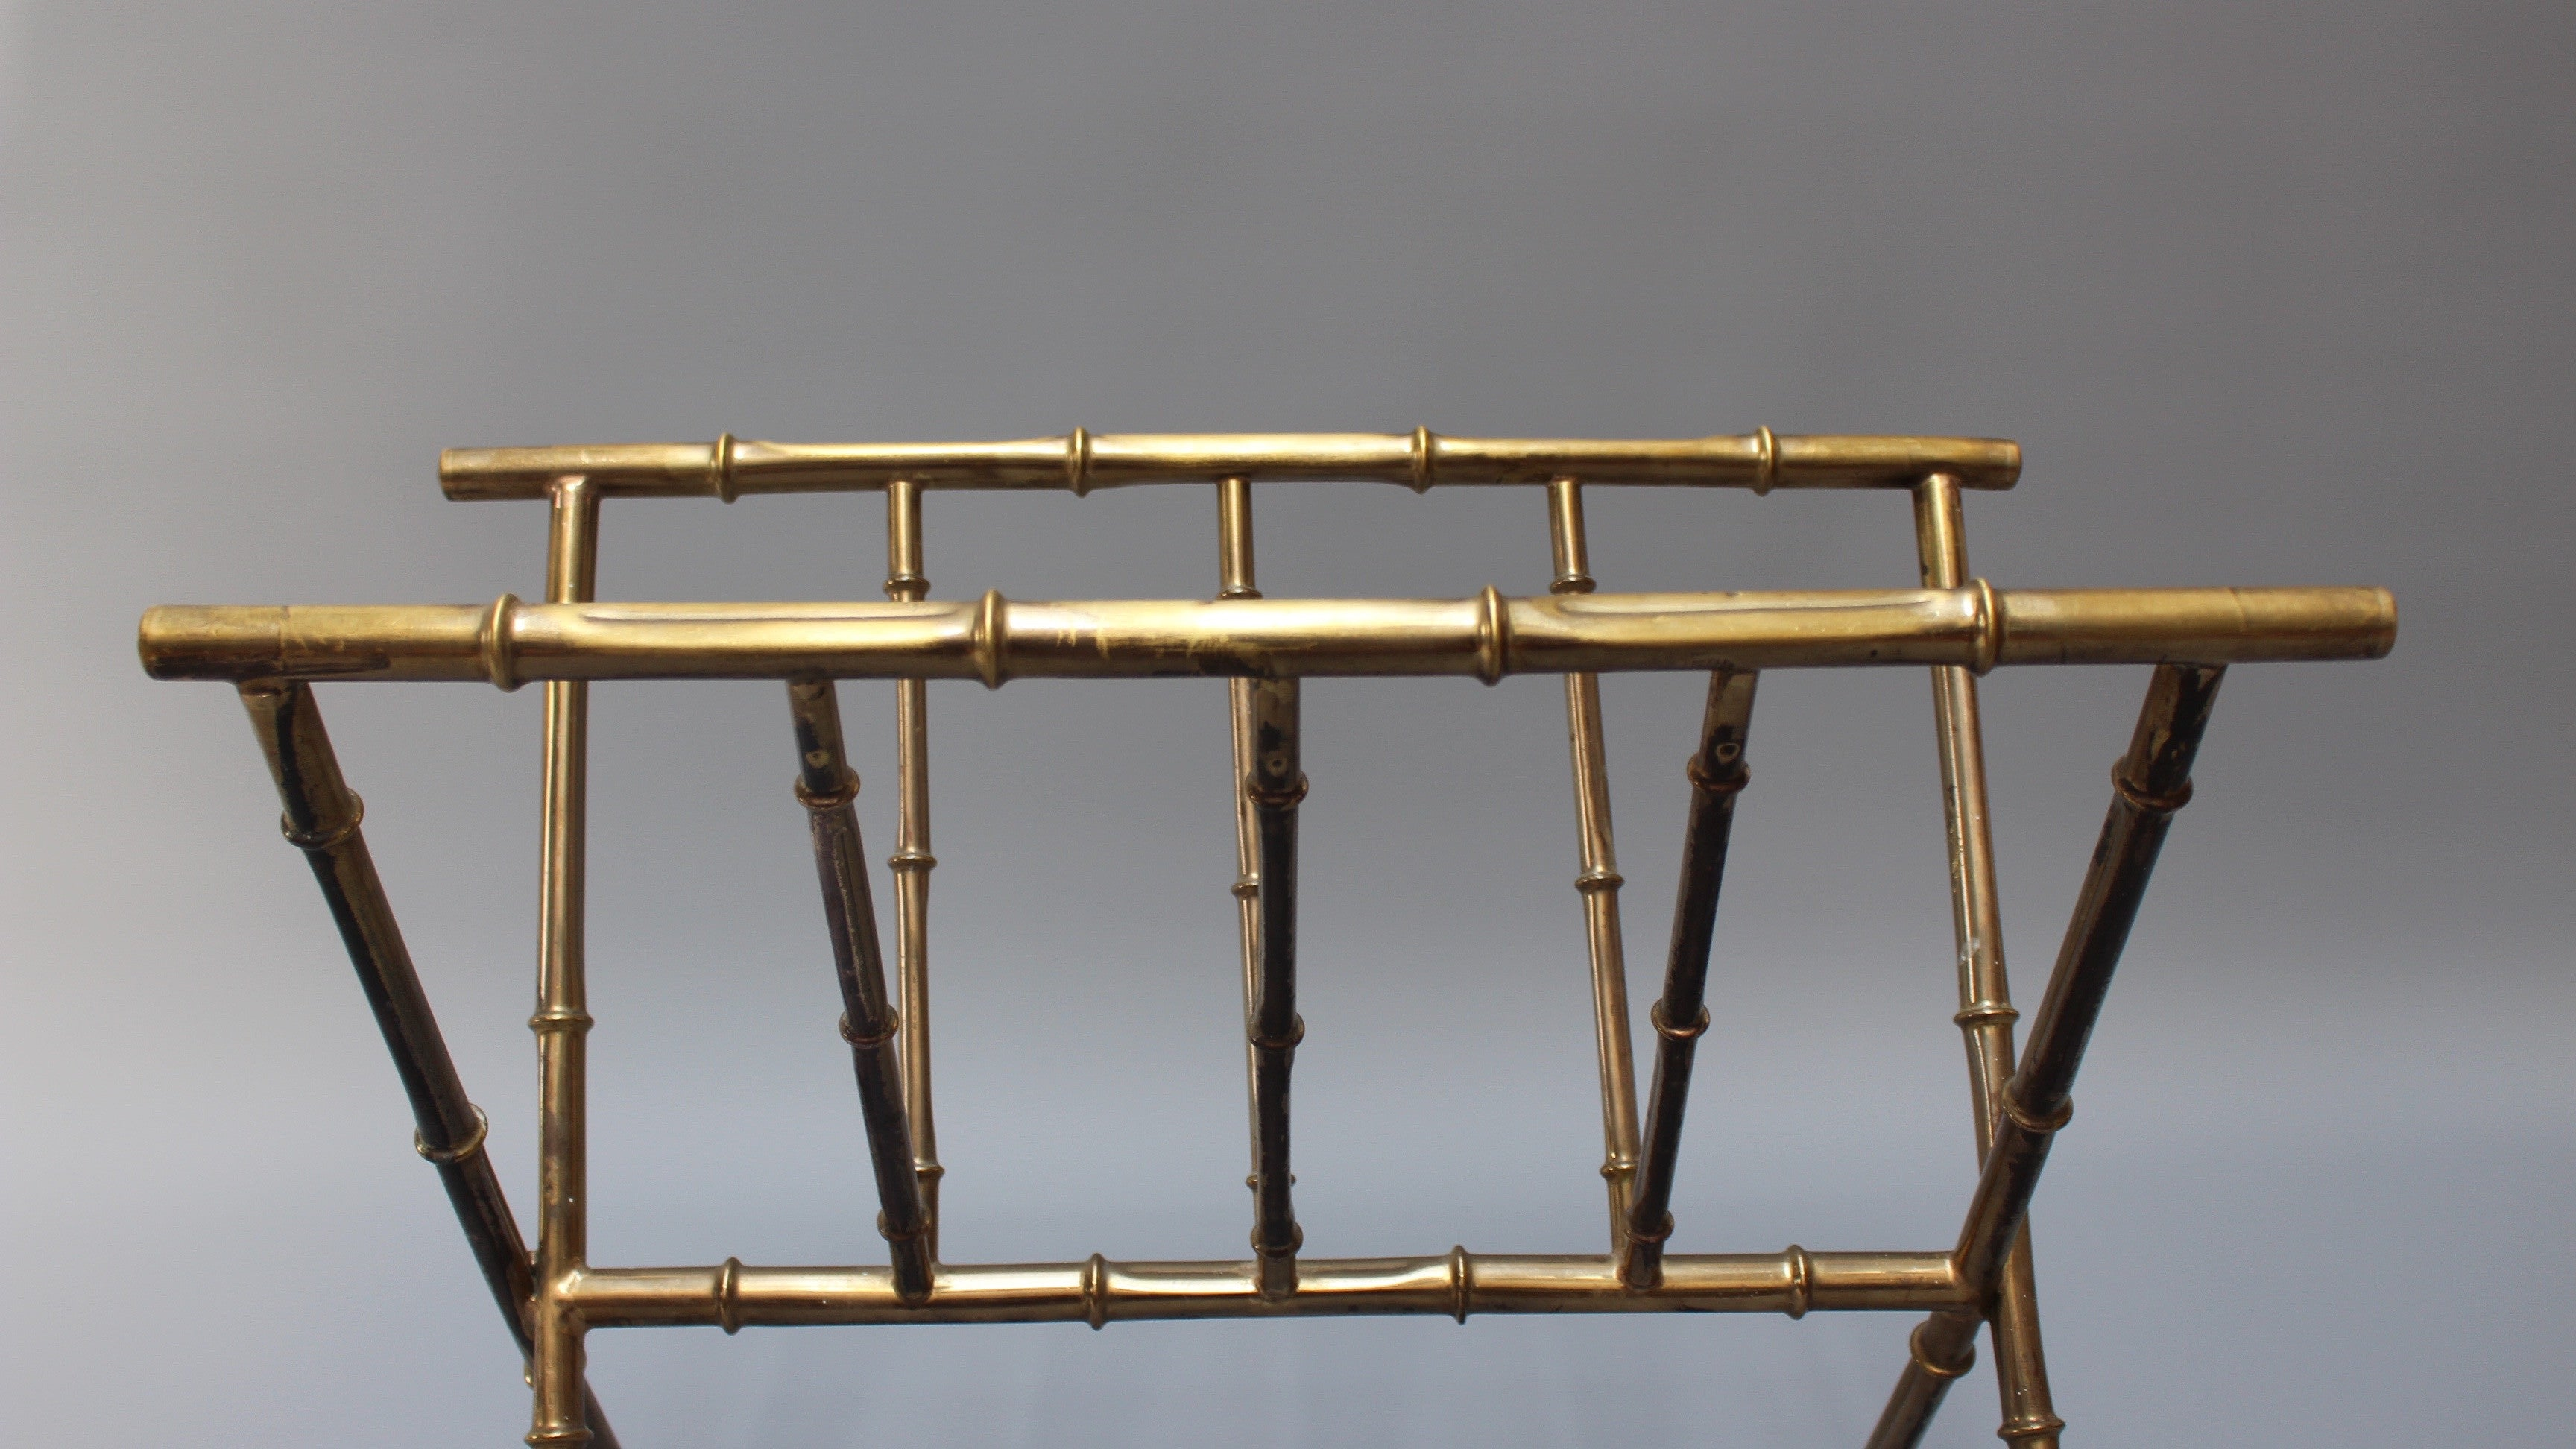 Brass 'Bamboo' Magazine Rack in the Style of Jacques Adnet (c. 1950s)